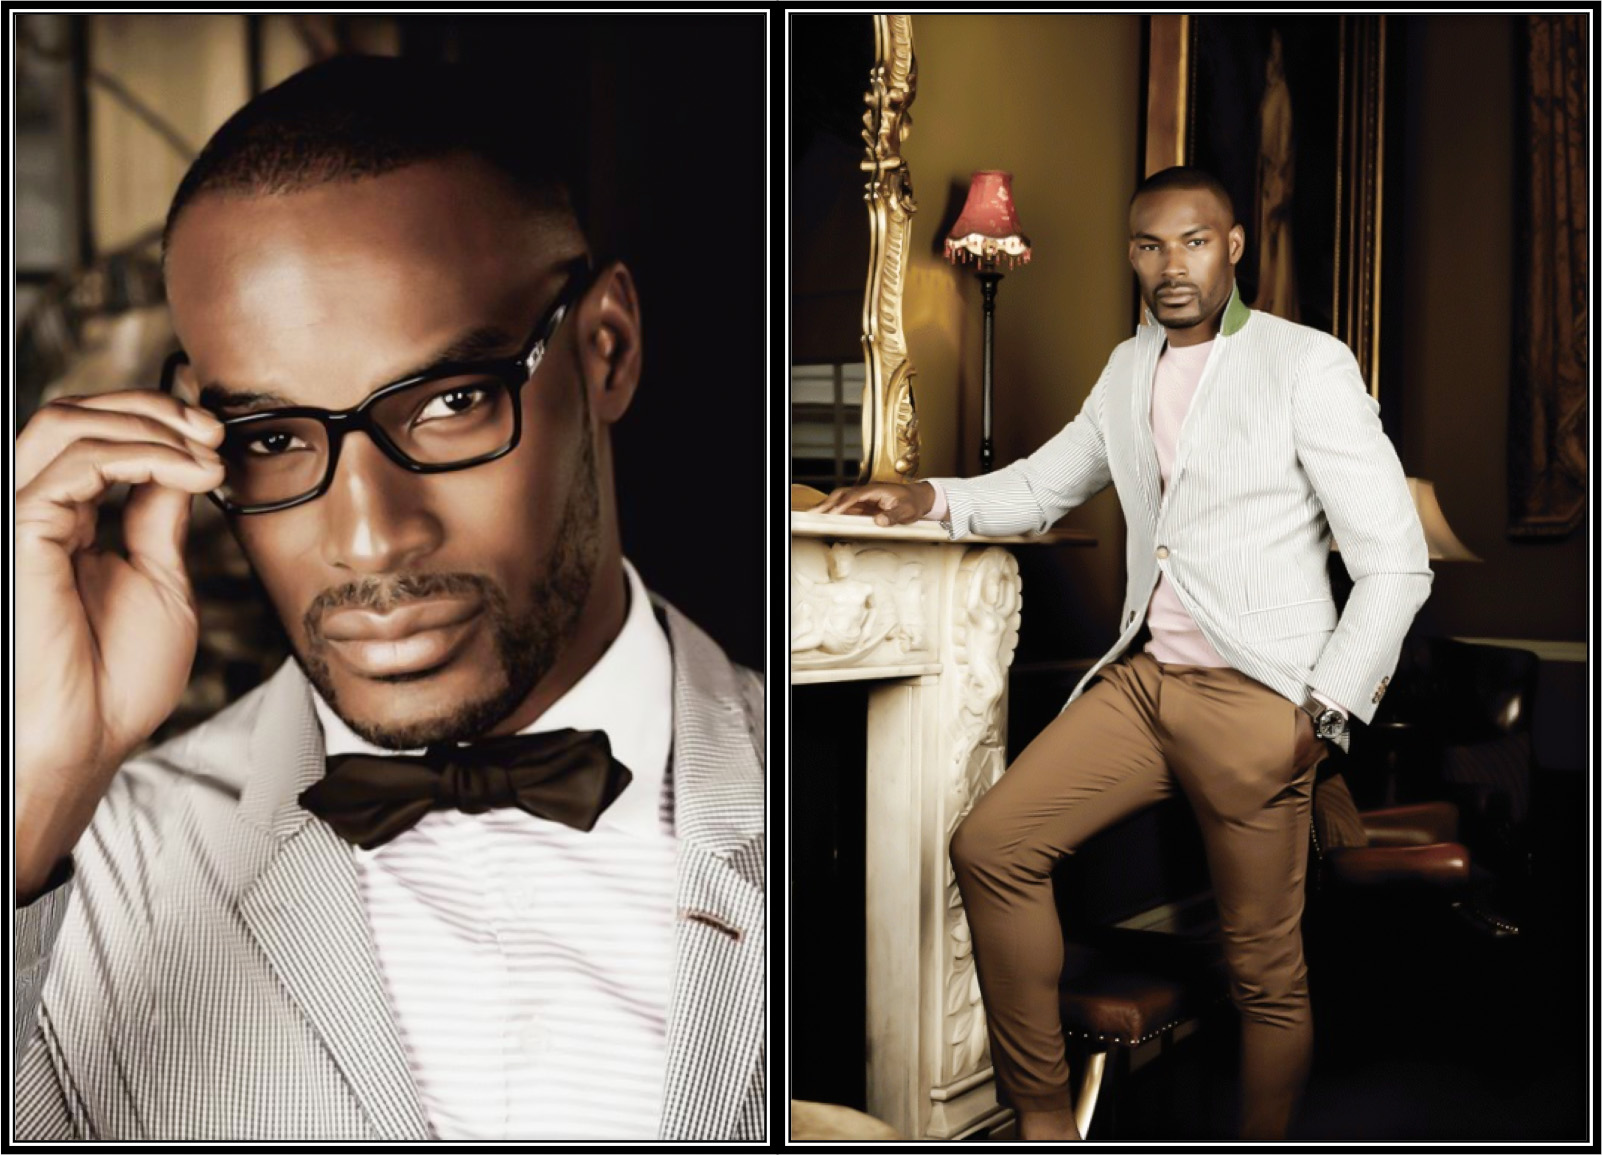 Myer-Fashions-on-The Field-judge-tyson-beckford_tyson-beckford-melbourne-cup-2013_lavazza-marquee_tyson-beckford-derby-day_tyson-beckford-fashion-style_tyson-beckford-editorials_tyson-beckford-runway_top-male-models-6